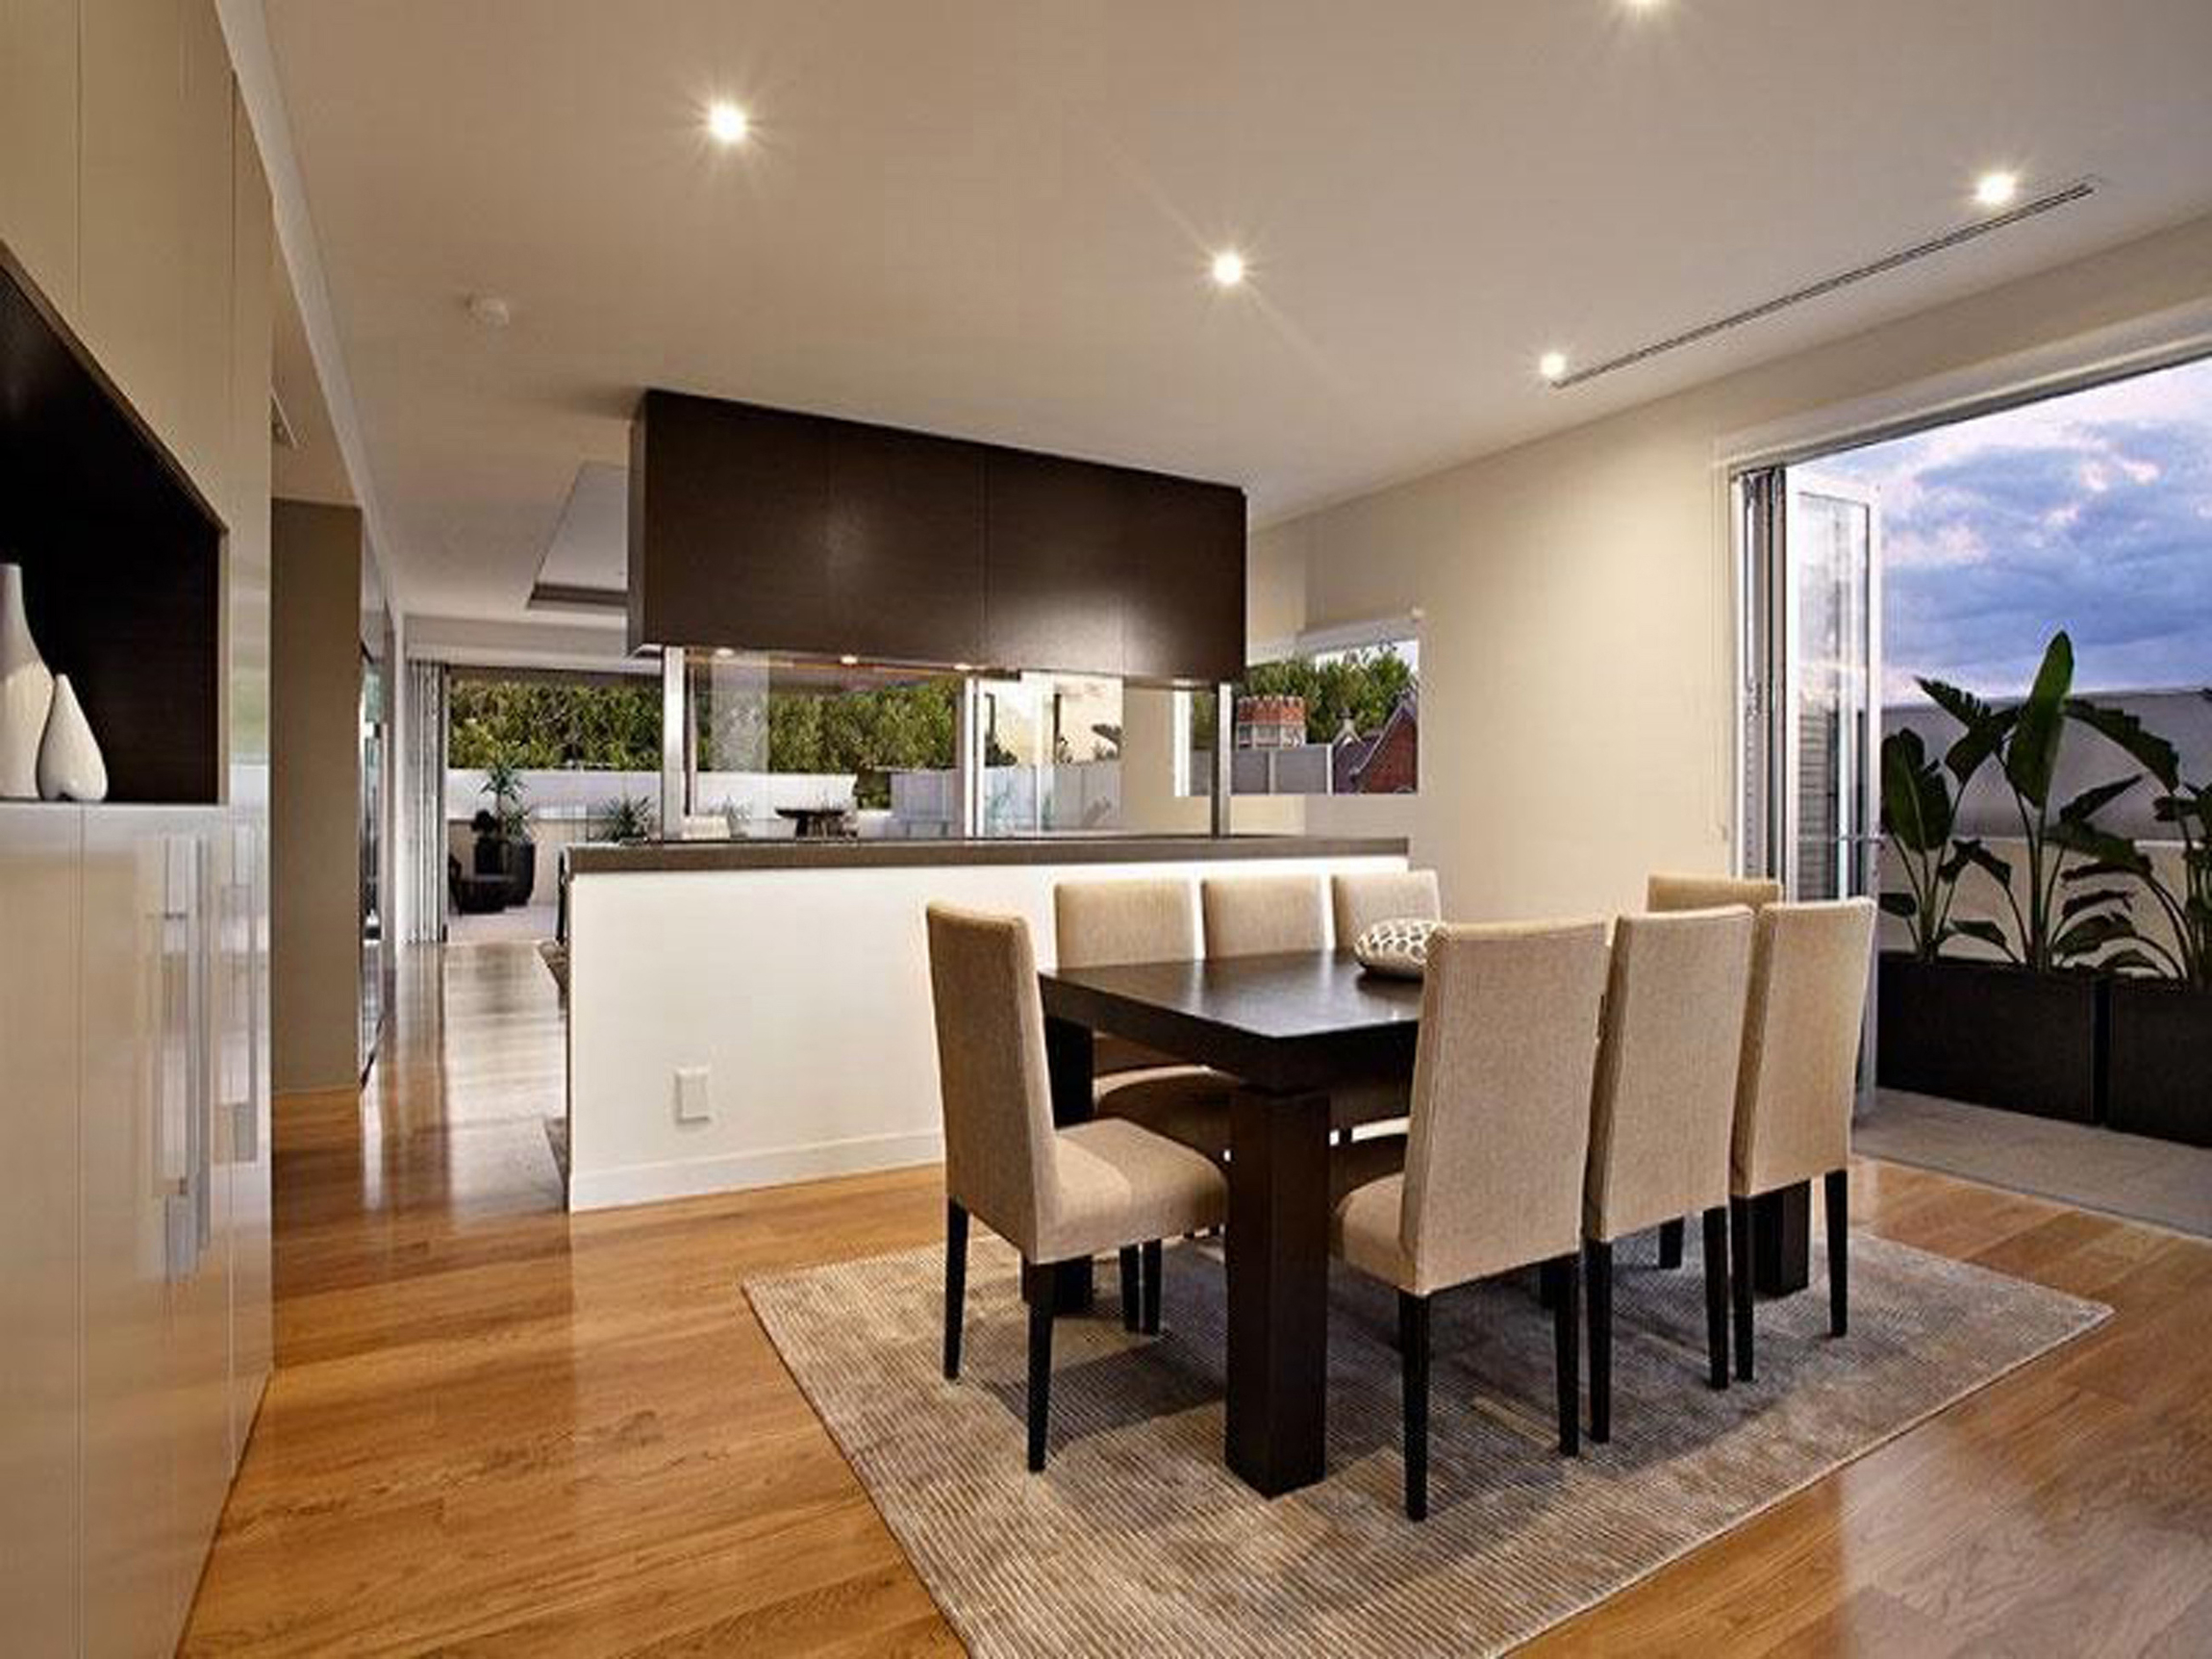 Kitchen Ideas With Open Window Teak Dining Table And Patio (Image 37 of 38)